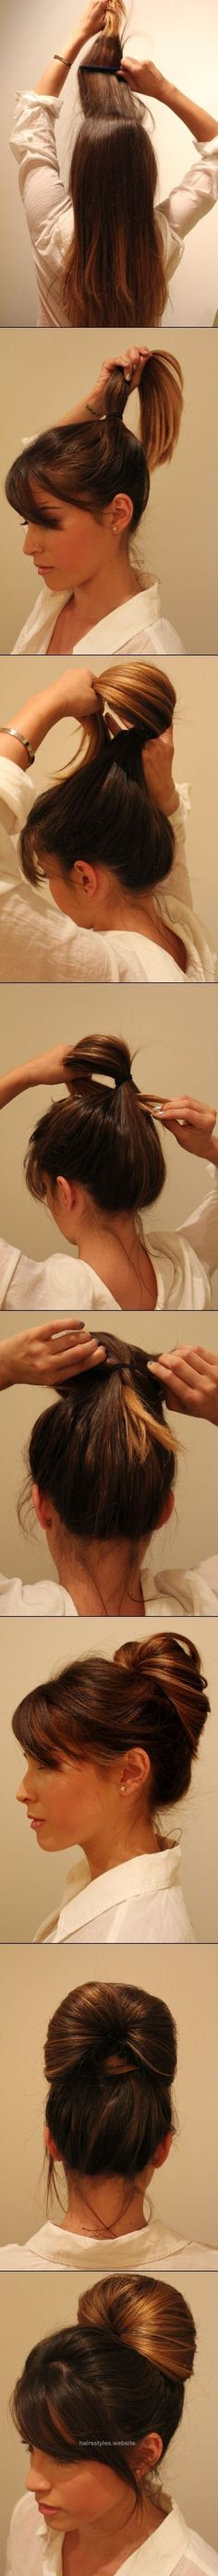 Wonderful This sleek 'do only takes a minute and looks professional enough for work. | 26 Lazy Girl Hairstyling Hacks The post This sleek 'do only takes a minute and looks professional enough f ..